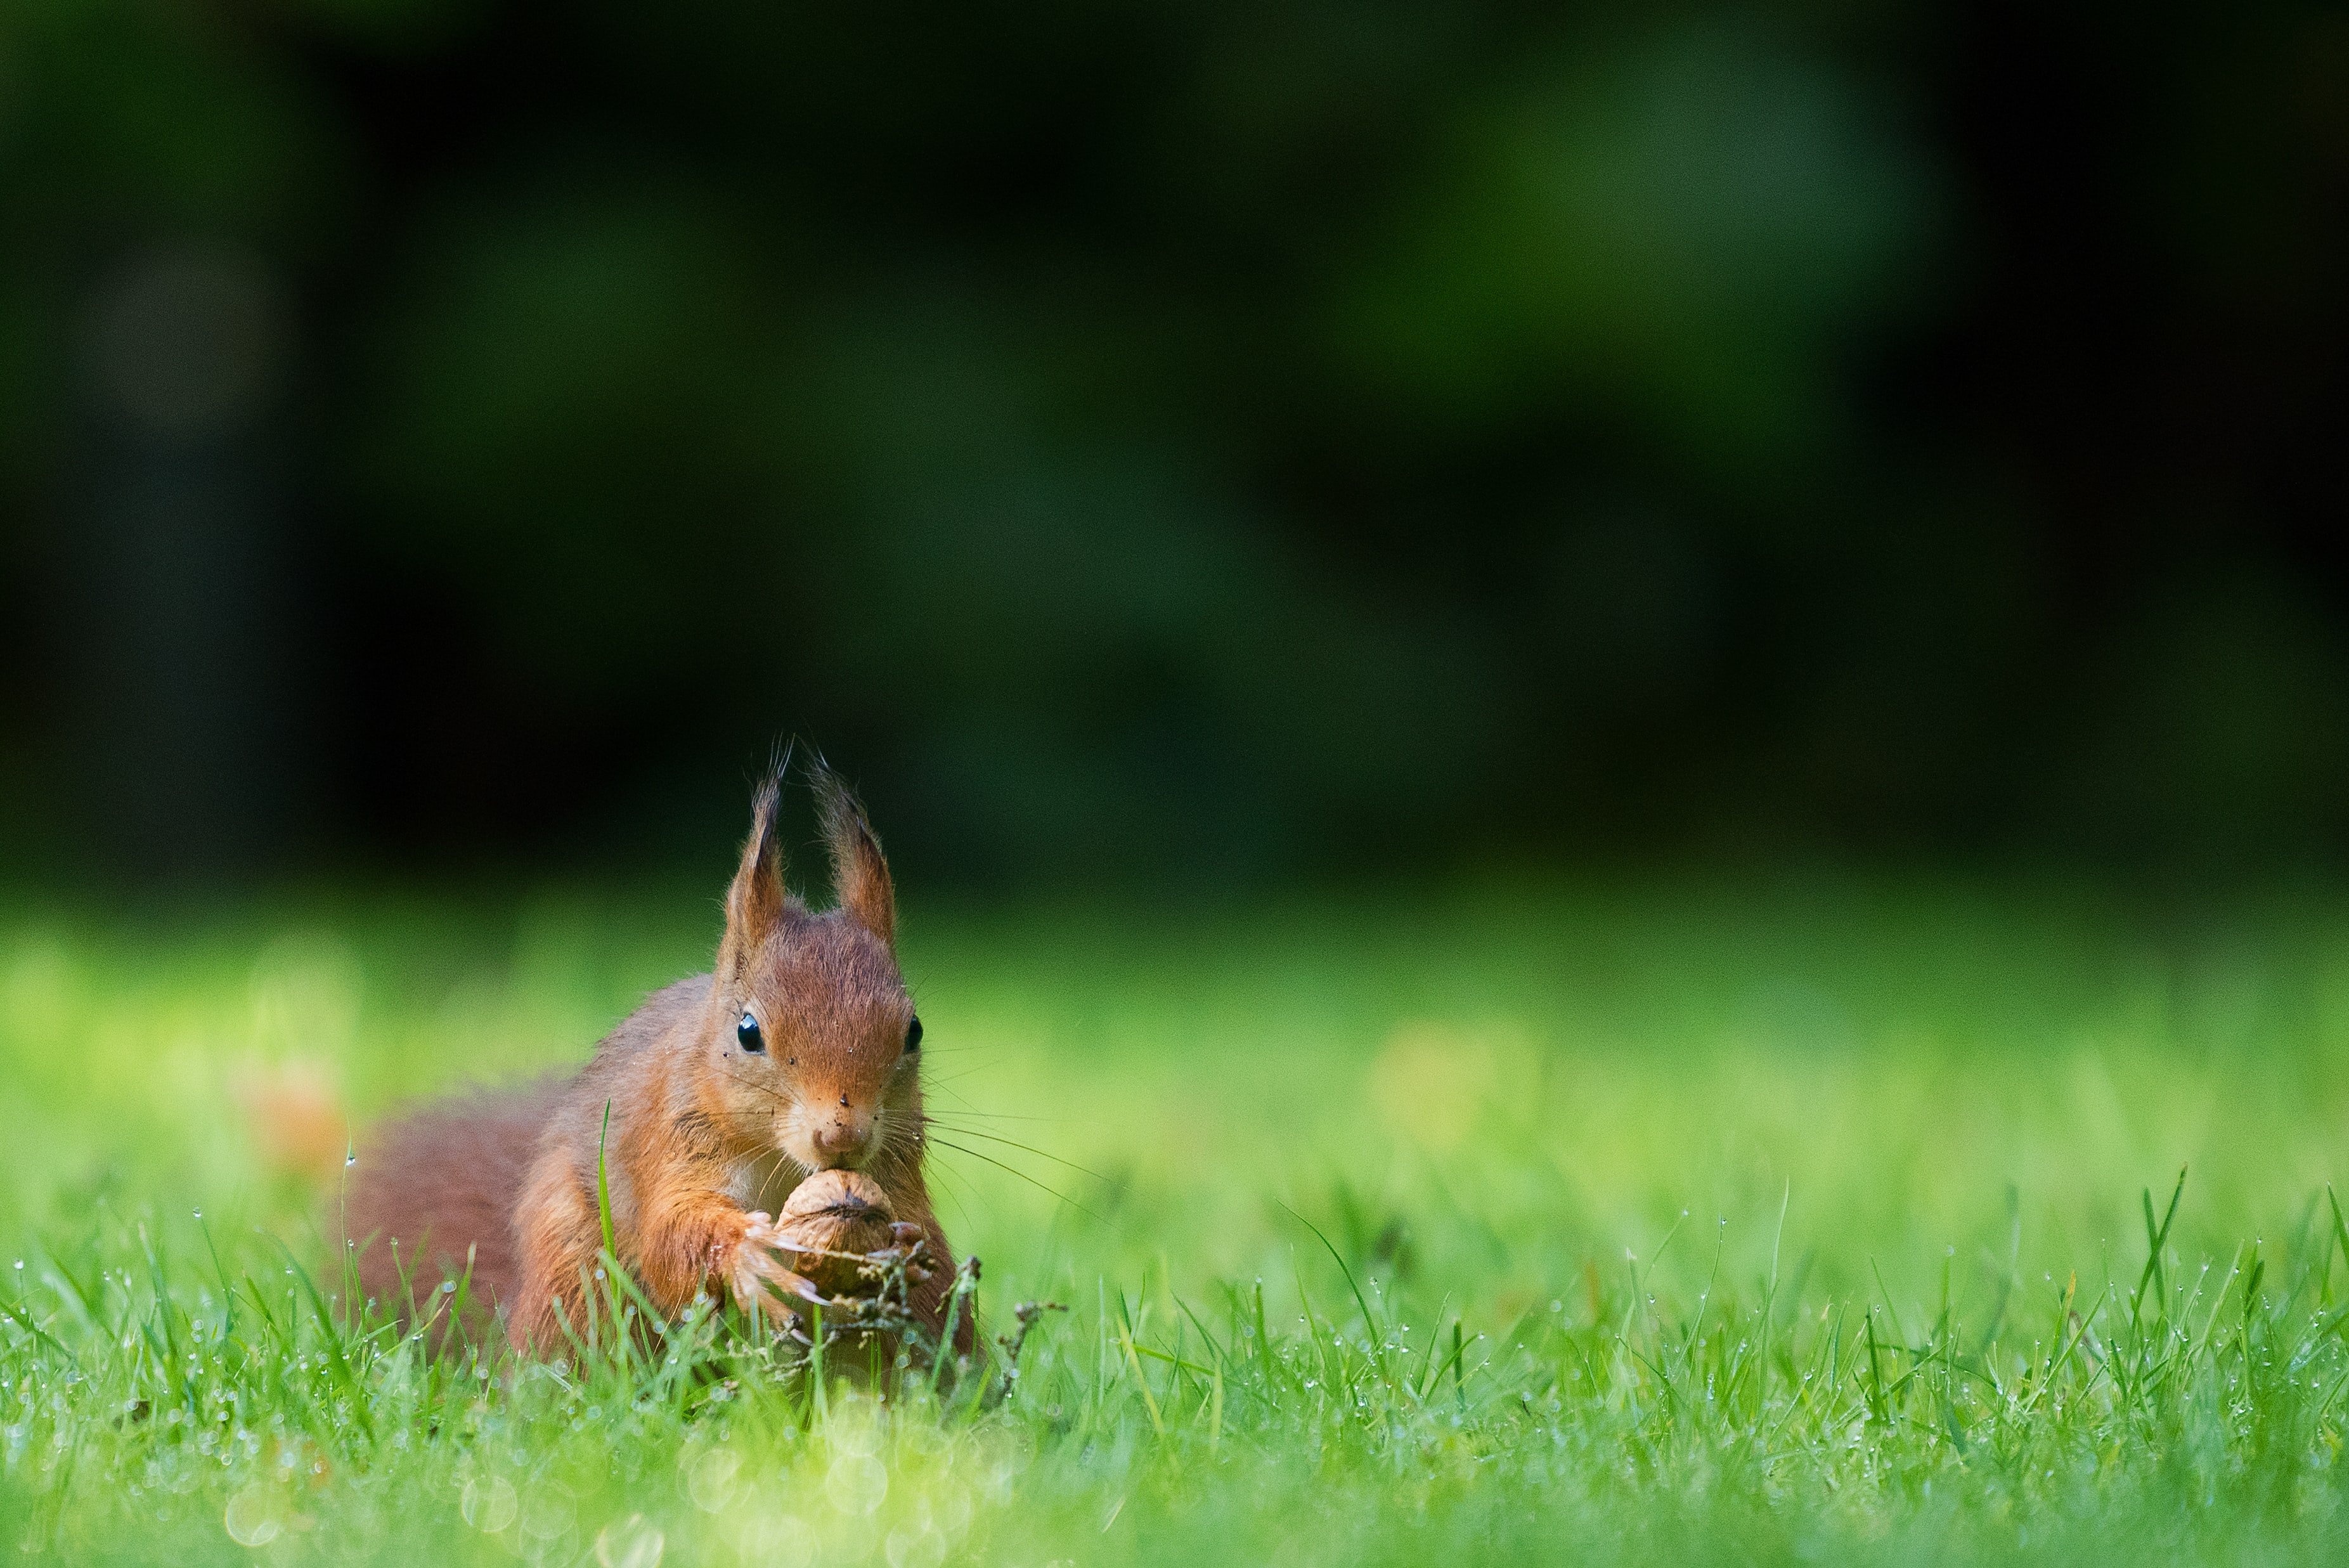 tilt-shift lens photography of brown squirrel holding nut on green grass during daytime